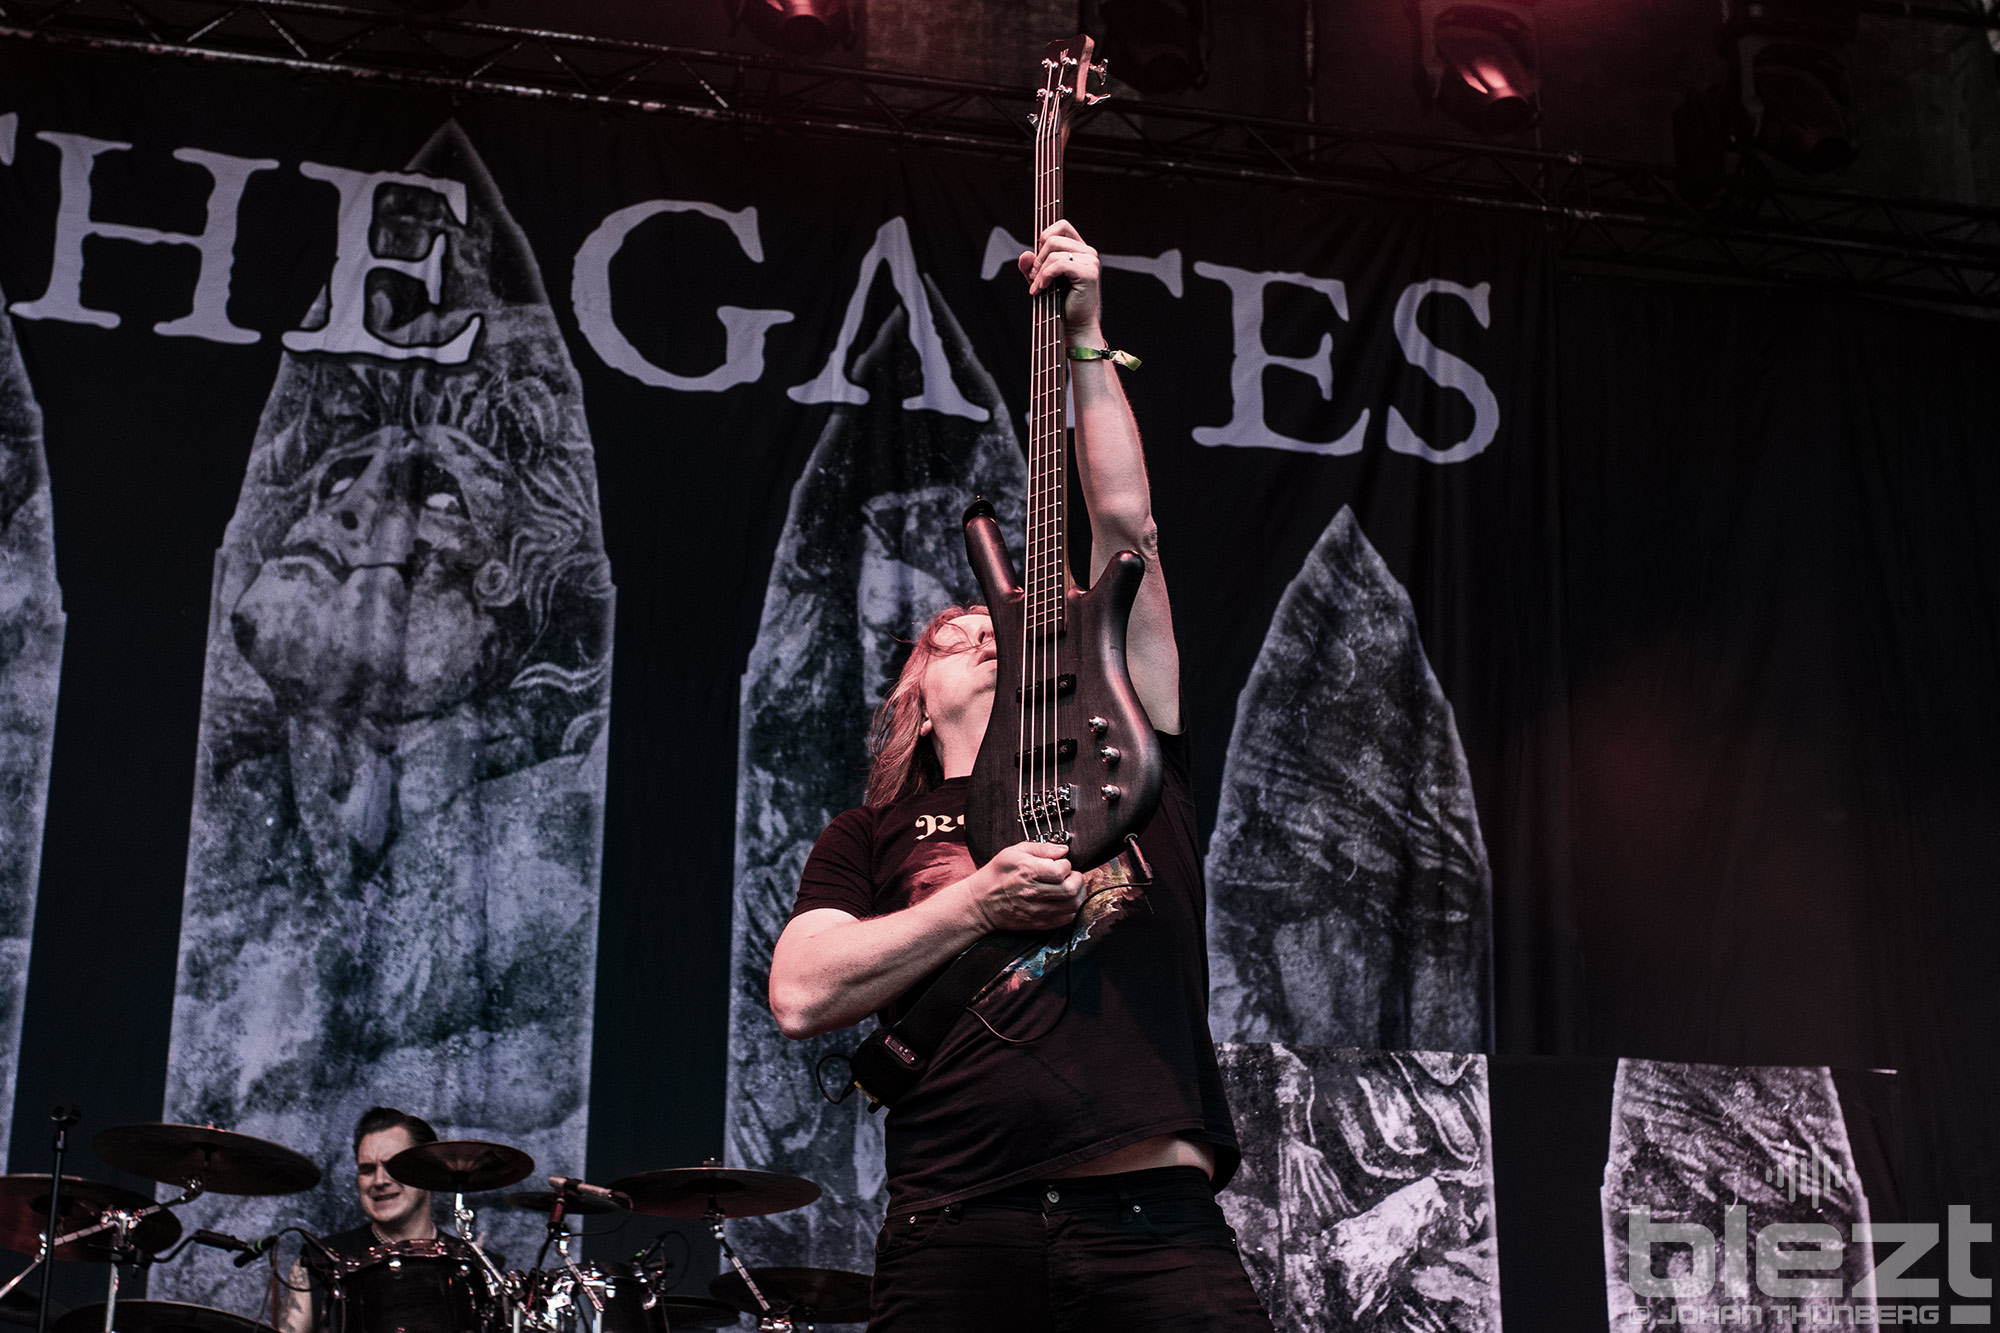 At The Gates Borgholm Brinner 2019 BLEZT